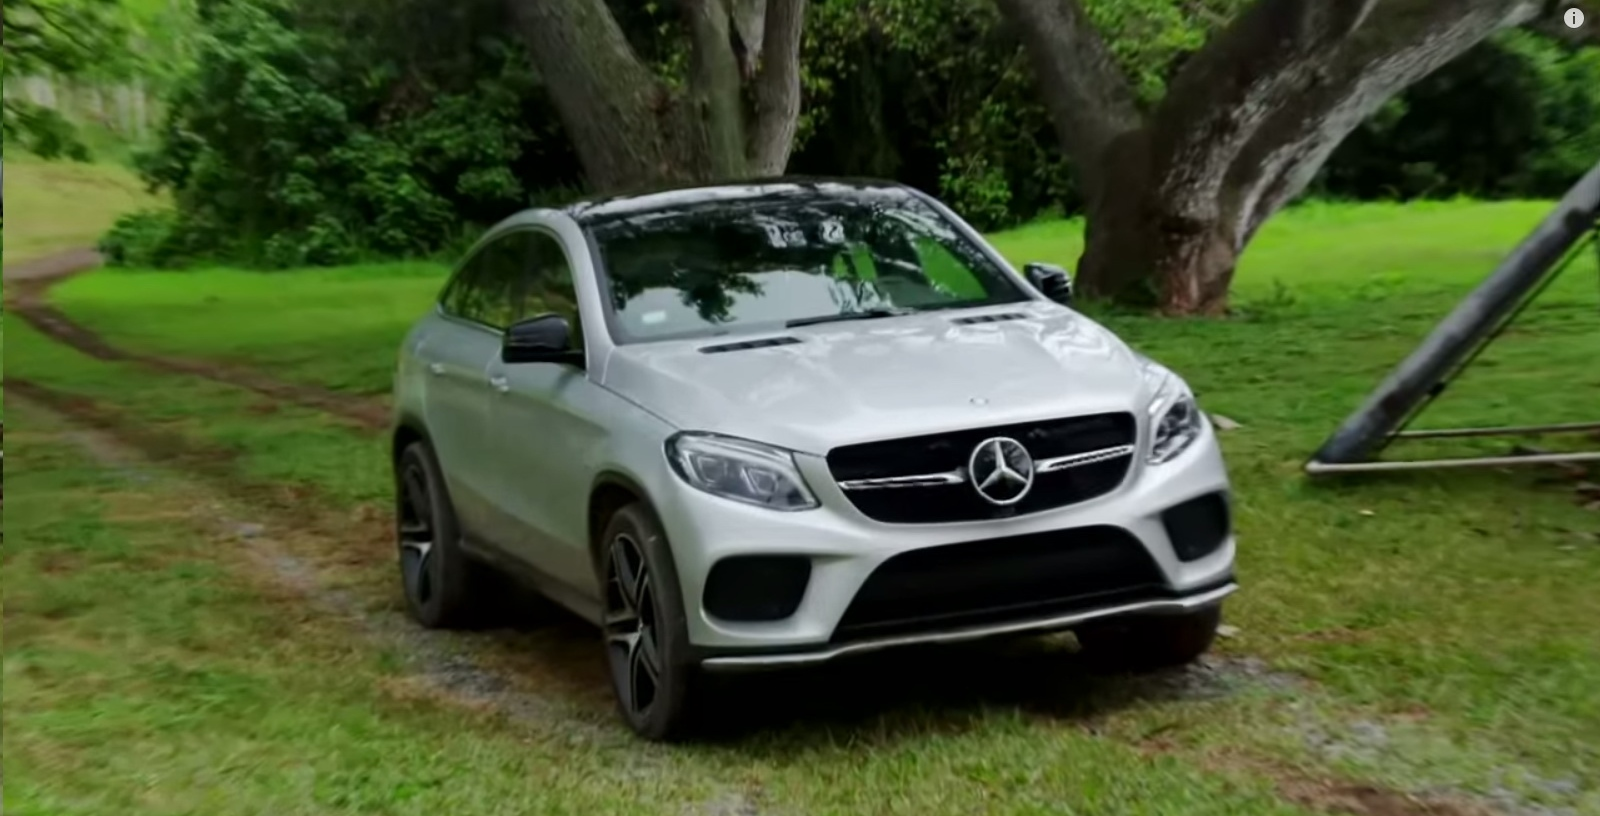 Mercedes benz gle 450 amg coup jurassic world 2015 for Camioneta mercedes benz